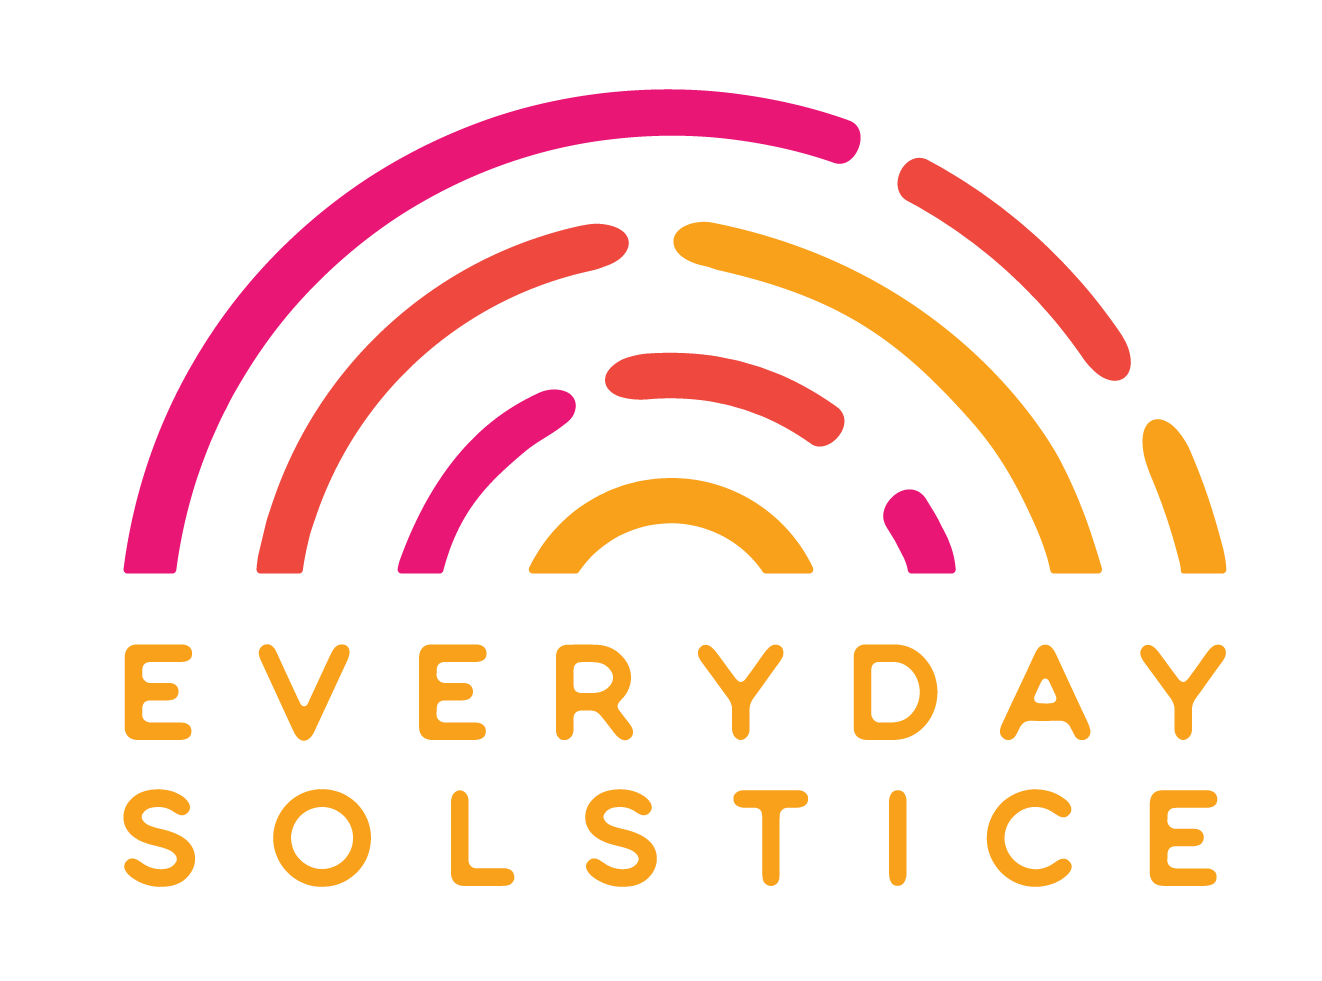 Services — Everyday Solstice